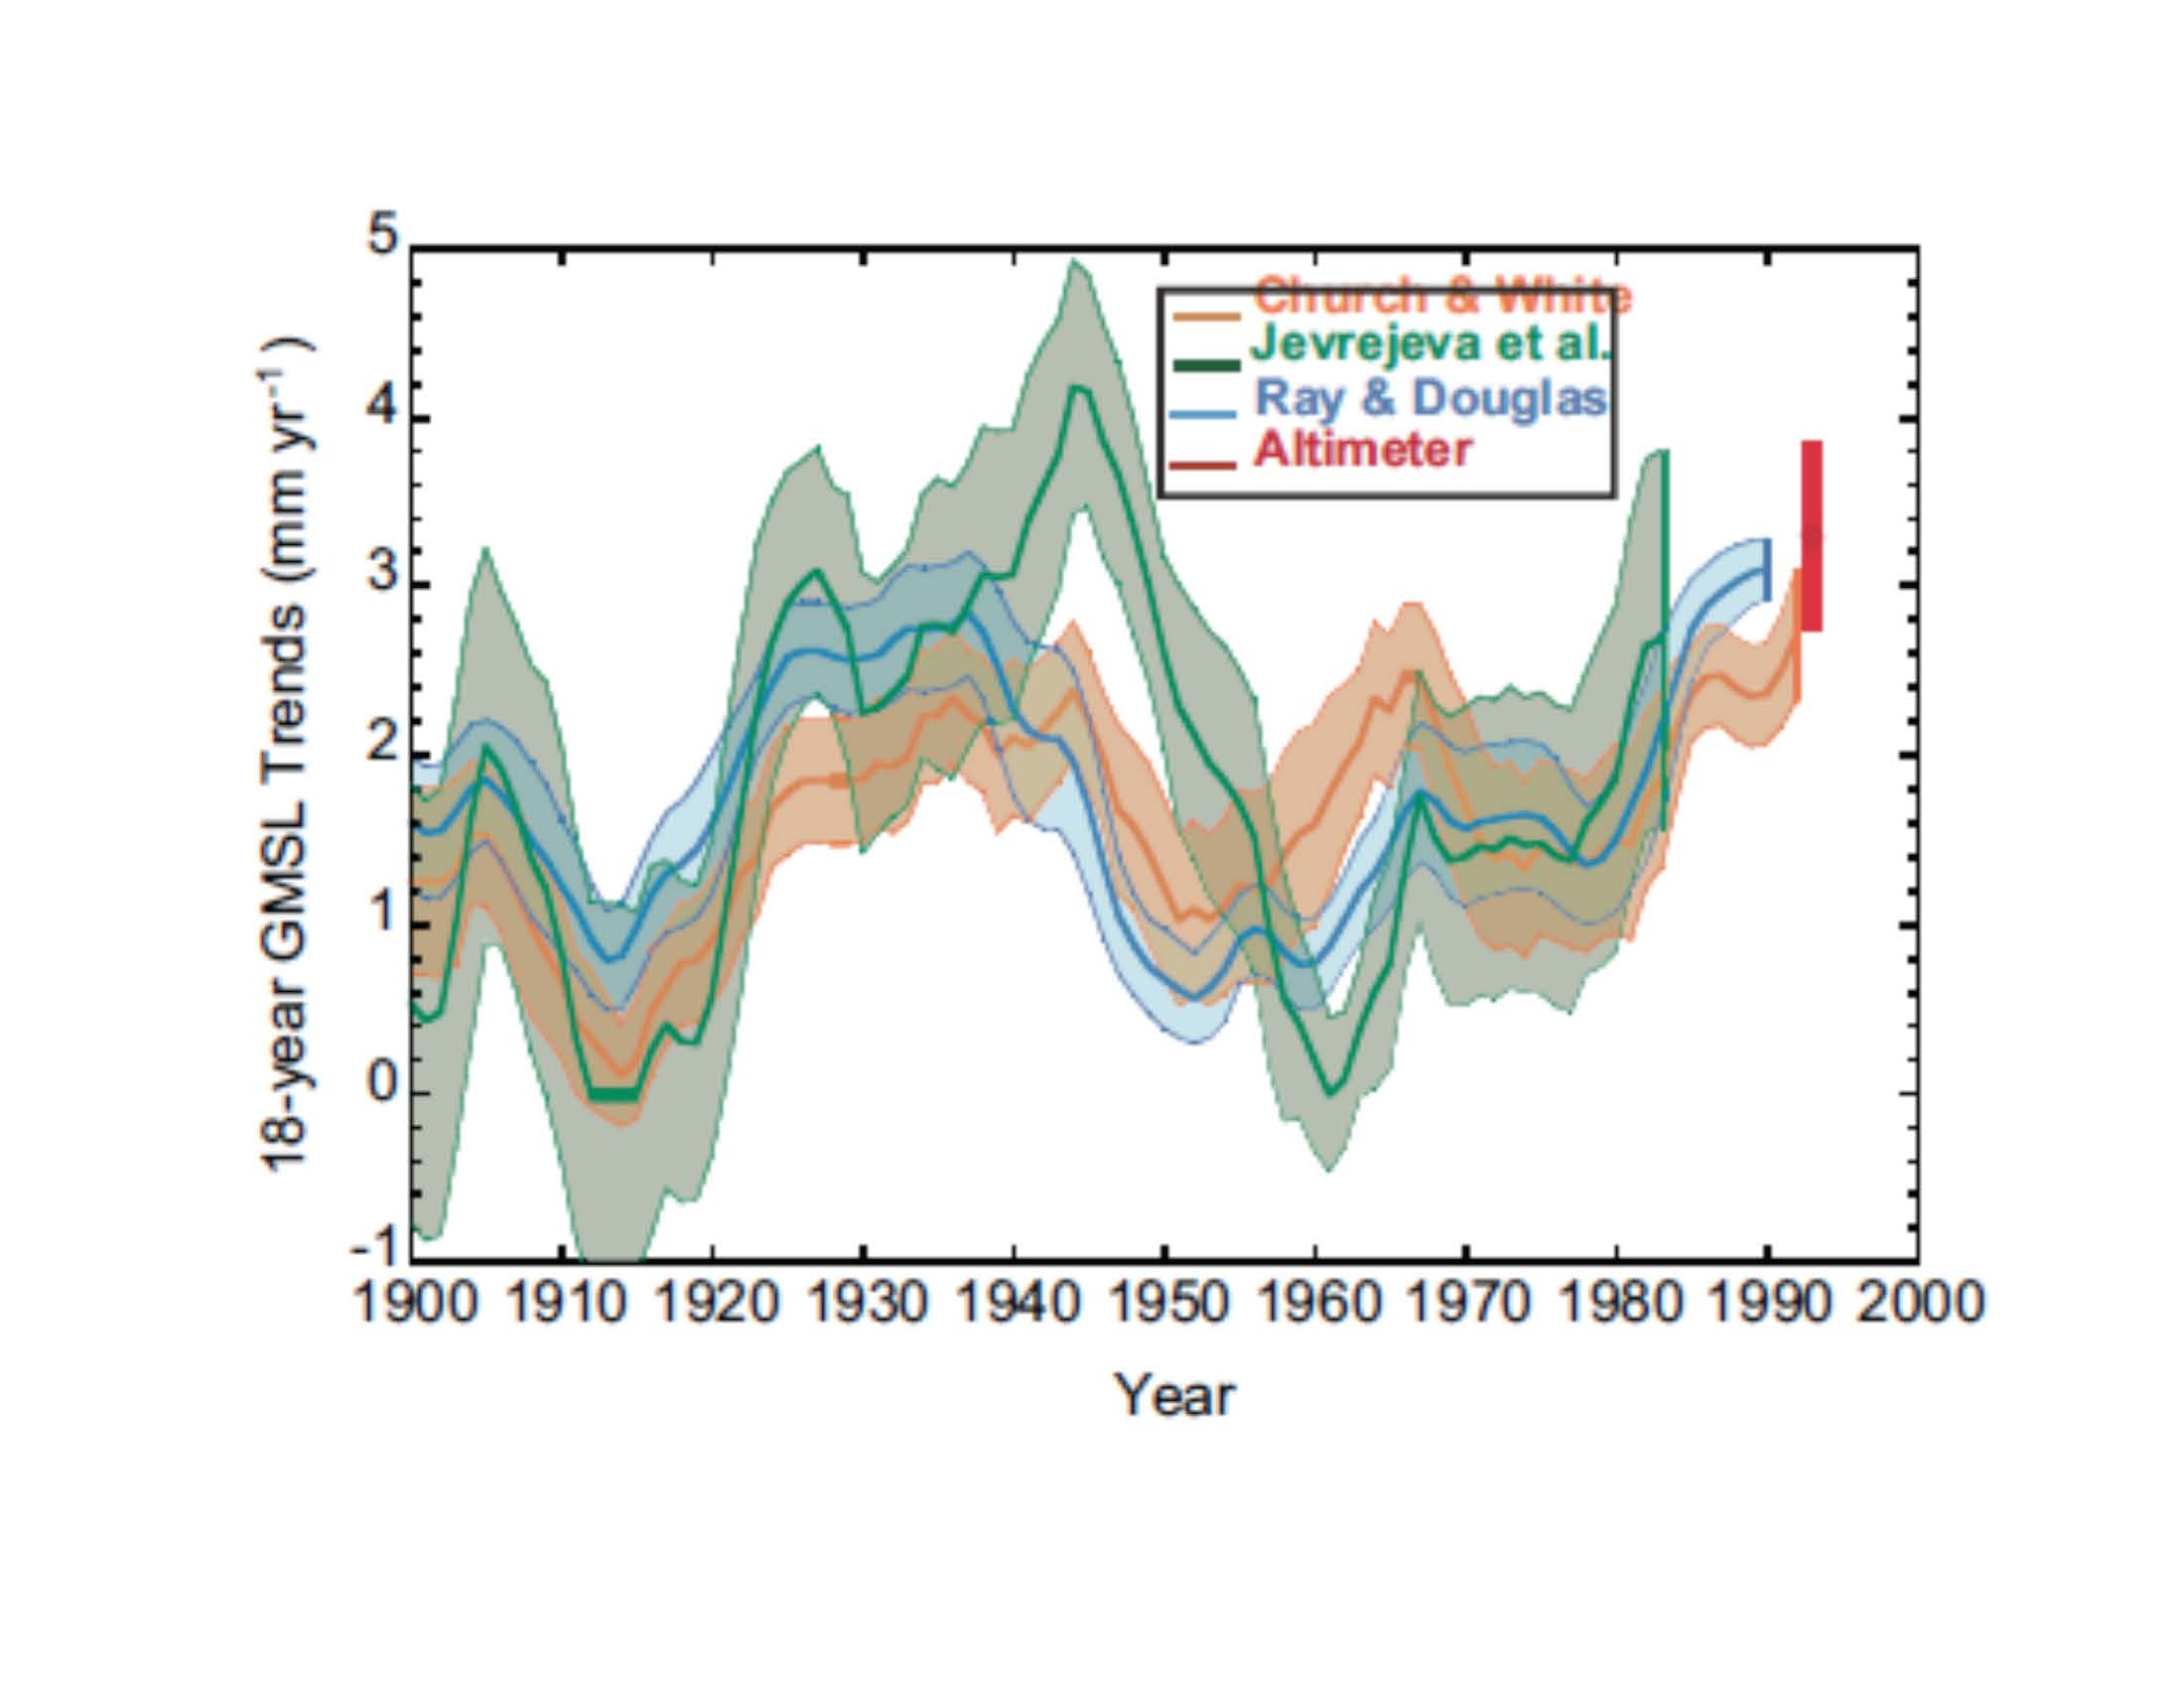 ipcc ar5 weakens the case for agw climate etc